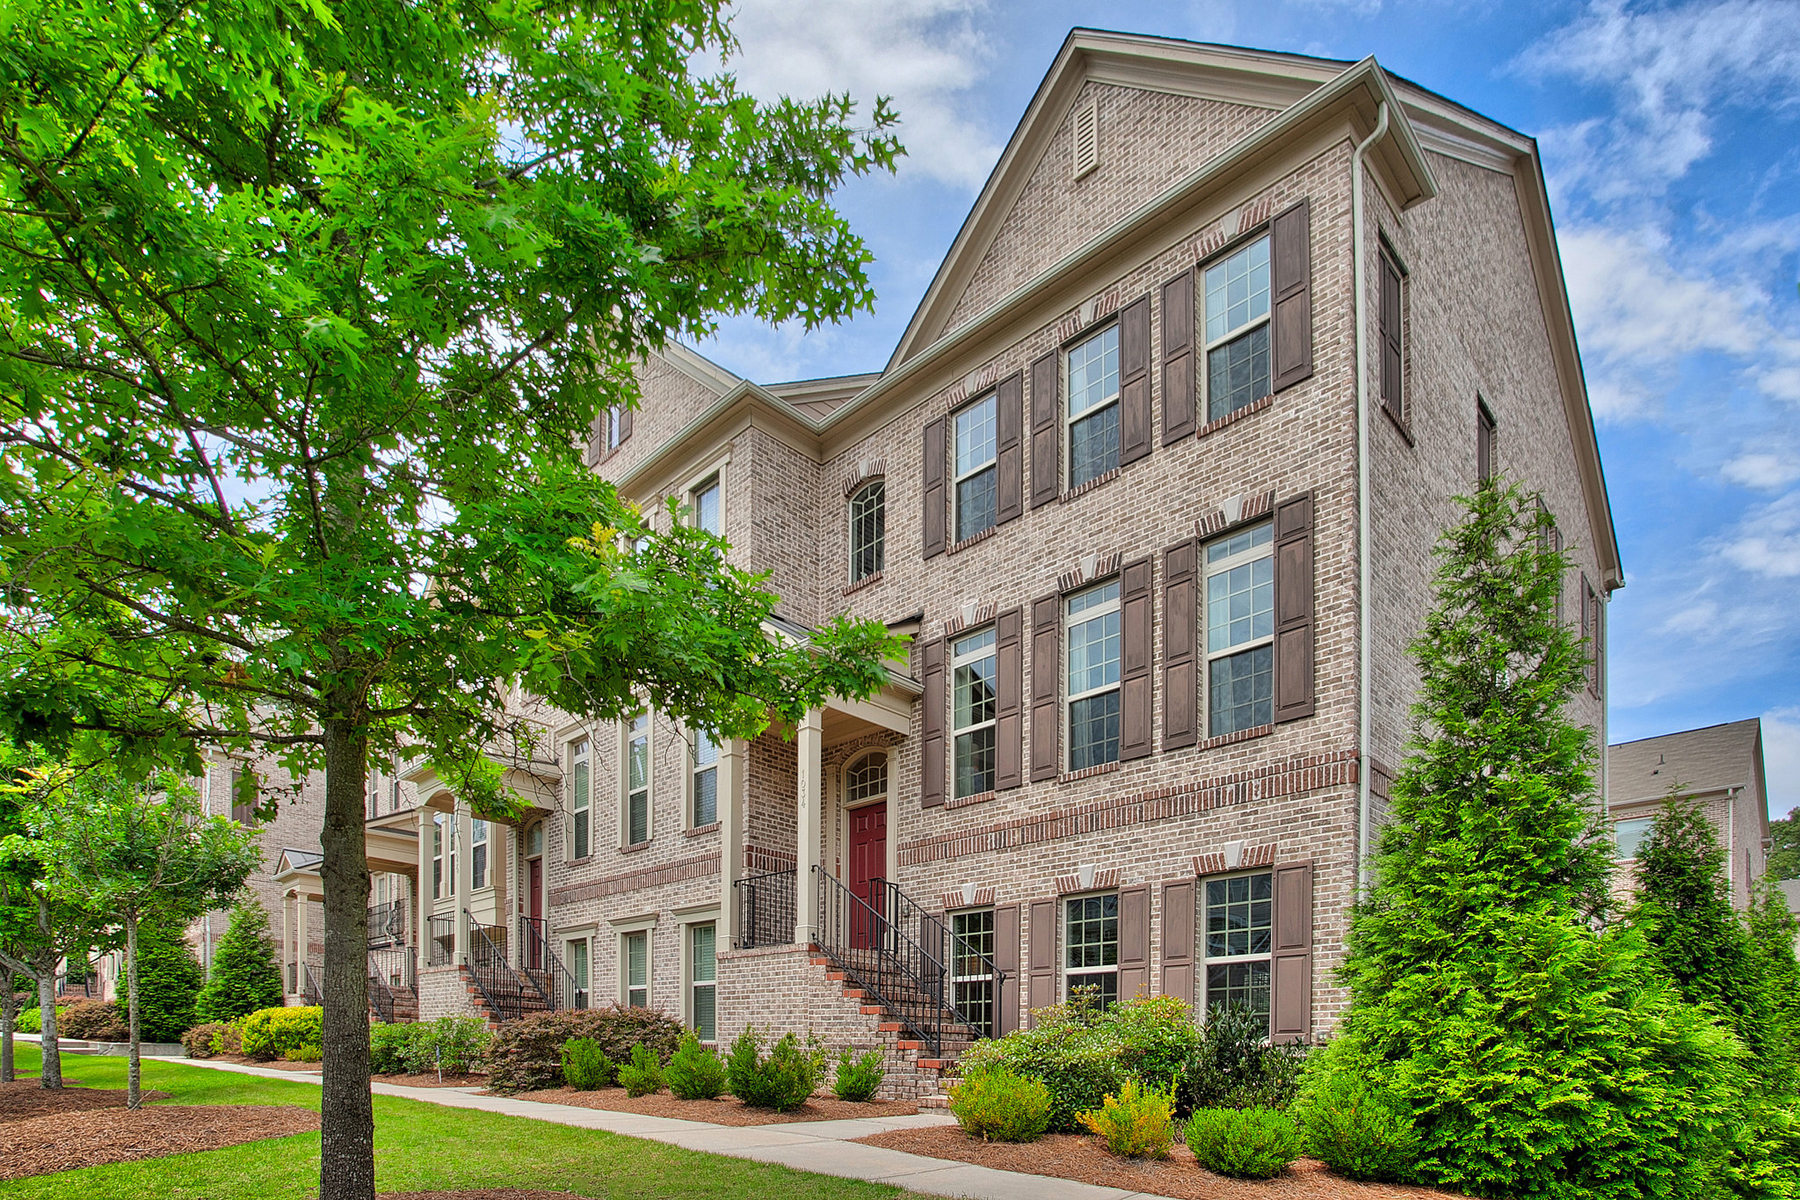 Townhouse for Sale at Luxury End Unit Townhome In Buckhead 1034 E Paces Chase NE Atlanta, Georgia 30326 United States